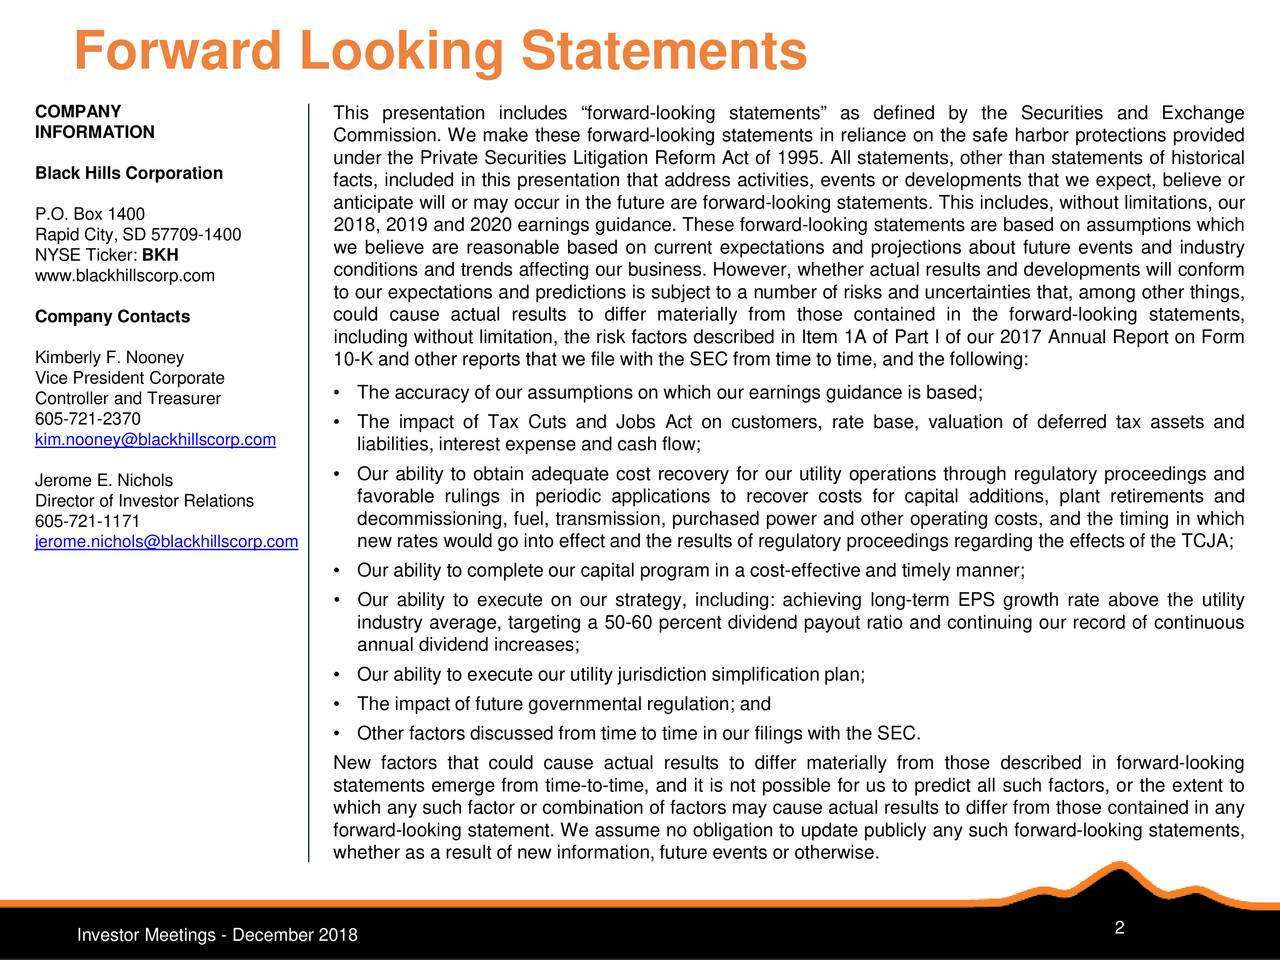 "COMPANY This presentation includes ""forward-looking statements"" as defined by the Securities and Exchange INFORMATION Commission. We make these forward-looking statements in reliance on the safe harbor protections provided under the Private Securities Litigation Reform Act of 1995. All statements, other than statements of historical Black Hills Corporation facts, included in this presentation that address activities, events or developments that we expect, believe or P.O. Box 1400 anticipate will or may occur in the future are forward-looking statements. This includes, without limitations, our 2018, 2019 and 2020 earnings guidance. These forward-looking statements are based on assumptions which Rapid City, SD 57709-1400 we believe are reasonable based on current expectations and projections about future events and industry NYSE Ticker: BKH www.blackhillscorp.com conditions and trends affecting our business. However, whether actual results and developments will conform to our expectations and predictions is subject to a number of risks and uncertainties that, among other things, Company Contacts could cause actual results to differ materially from those contained in the forward-looking statements, including without limitation, the risk factors described in Item 1A of Part I of our 2017 Annual Report on Form Kimberly F. Nooney 10-K and other reports that we file with the SEC from time to time, and the following: Vice President Corporate • The accuracy of our assumptions on which our earnings guidance is based; Controller and Treasurer 605-721-2370 • The impact of Tax Cuts and Jobs Act on customers, rate base, valuation of deferred tax assets and kim.nooney@blackhillscorp.com liabilities, interest expense and cash flow; Jerome E. Nichols • Our ability to obtain adequate cost recovery for our utility operations through regulatory proceedings and Director of Investor Relations favorable rulings in periodic applications to recover costs for capital additions, plant retirements and 605-721-1171 decommissioning, fuel, transmission, purchased power and other operating costs, and the timing in which jerome.nichols@blackhillscorp.com new rates would go into effect and the results of regulatory proceedings regarding the effects of the TCJA; • Our ability to complete our capital program in a cost-effective and timely manner; • Our ability to execute on our strategy, including: achieving long-term EPS growth rate above the utility industry average, targeting a 50-60 percent dividend payout ratio and continuing our record of continuous annual dividend increases; • Our ability to execute our utility jurisdiction simplification plan; • The impact of future governmental regulation; and • Other factors discussed from time to time in our filings with the SEC. New factors that could cause actual results to differ materially from those described in forward-looking statements emerge from time-to-time, and it is not possible for us to predict all such factors, or the extent to which any such factor or combination of factors may cause actual results to differ from those contained in any forward-looking statement. We assume no obligation to update publicly any such forward-looking statements, whether as a result of new information, future events or otherwise. Investor Meetings - December 2018 2"